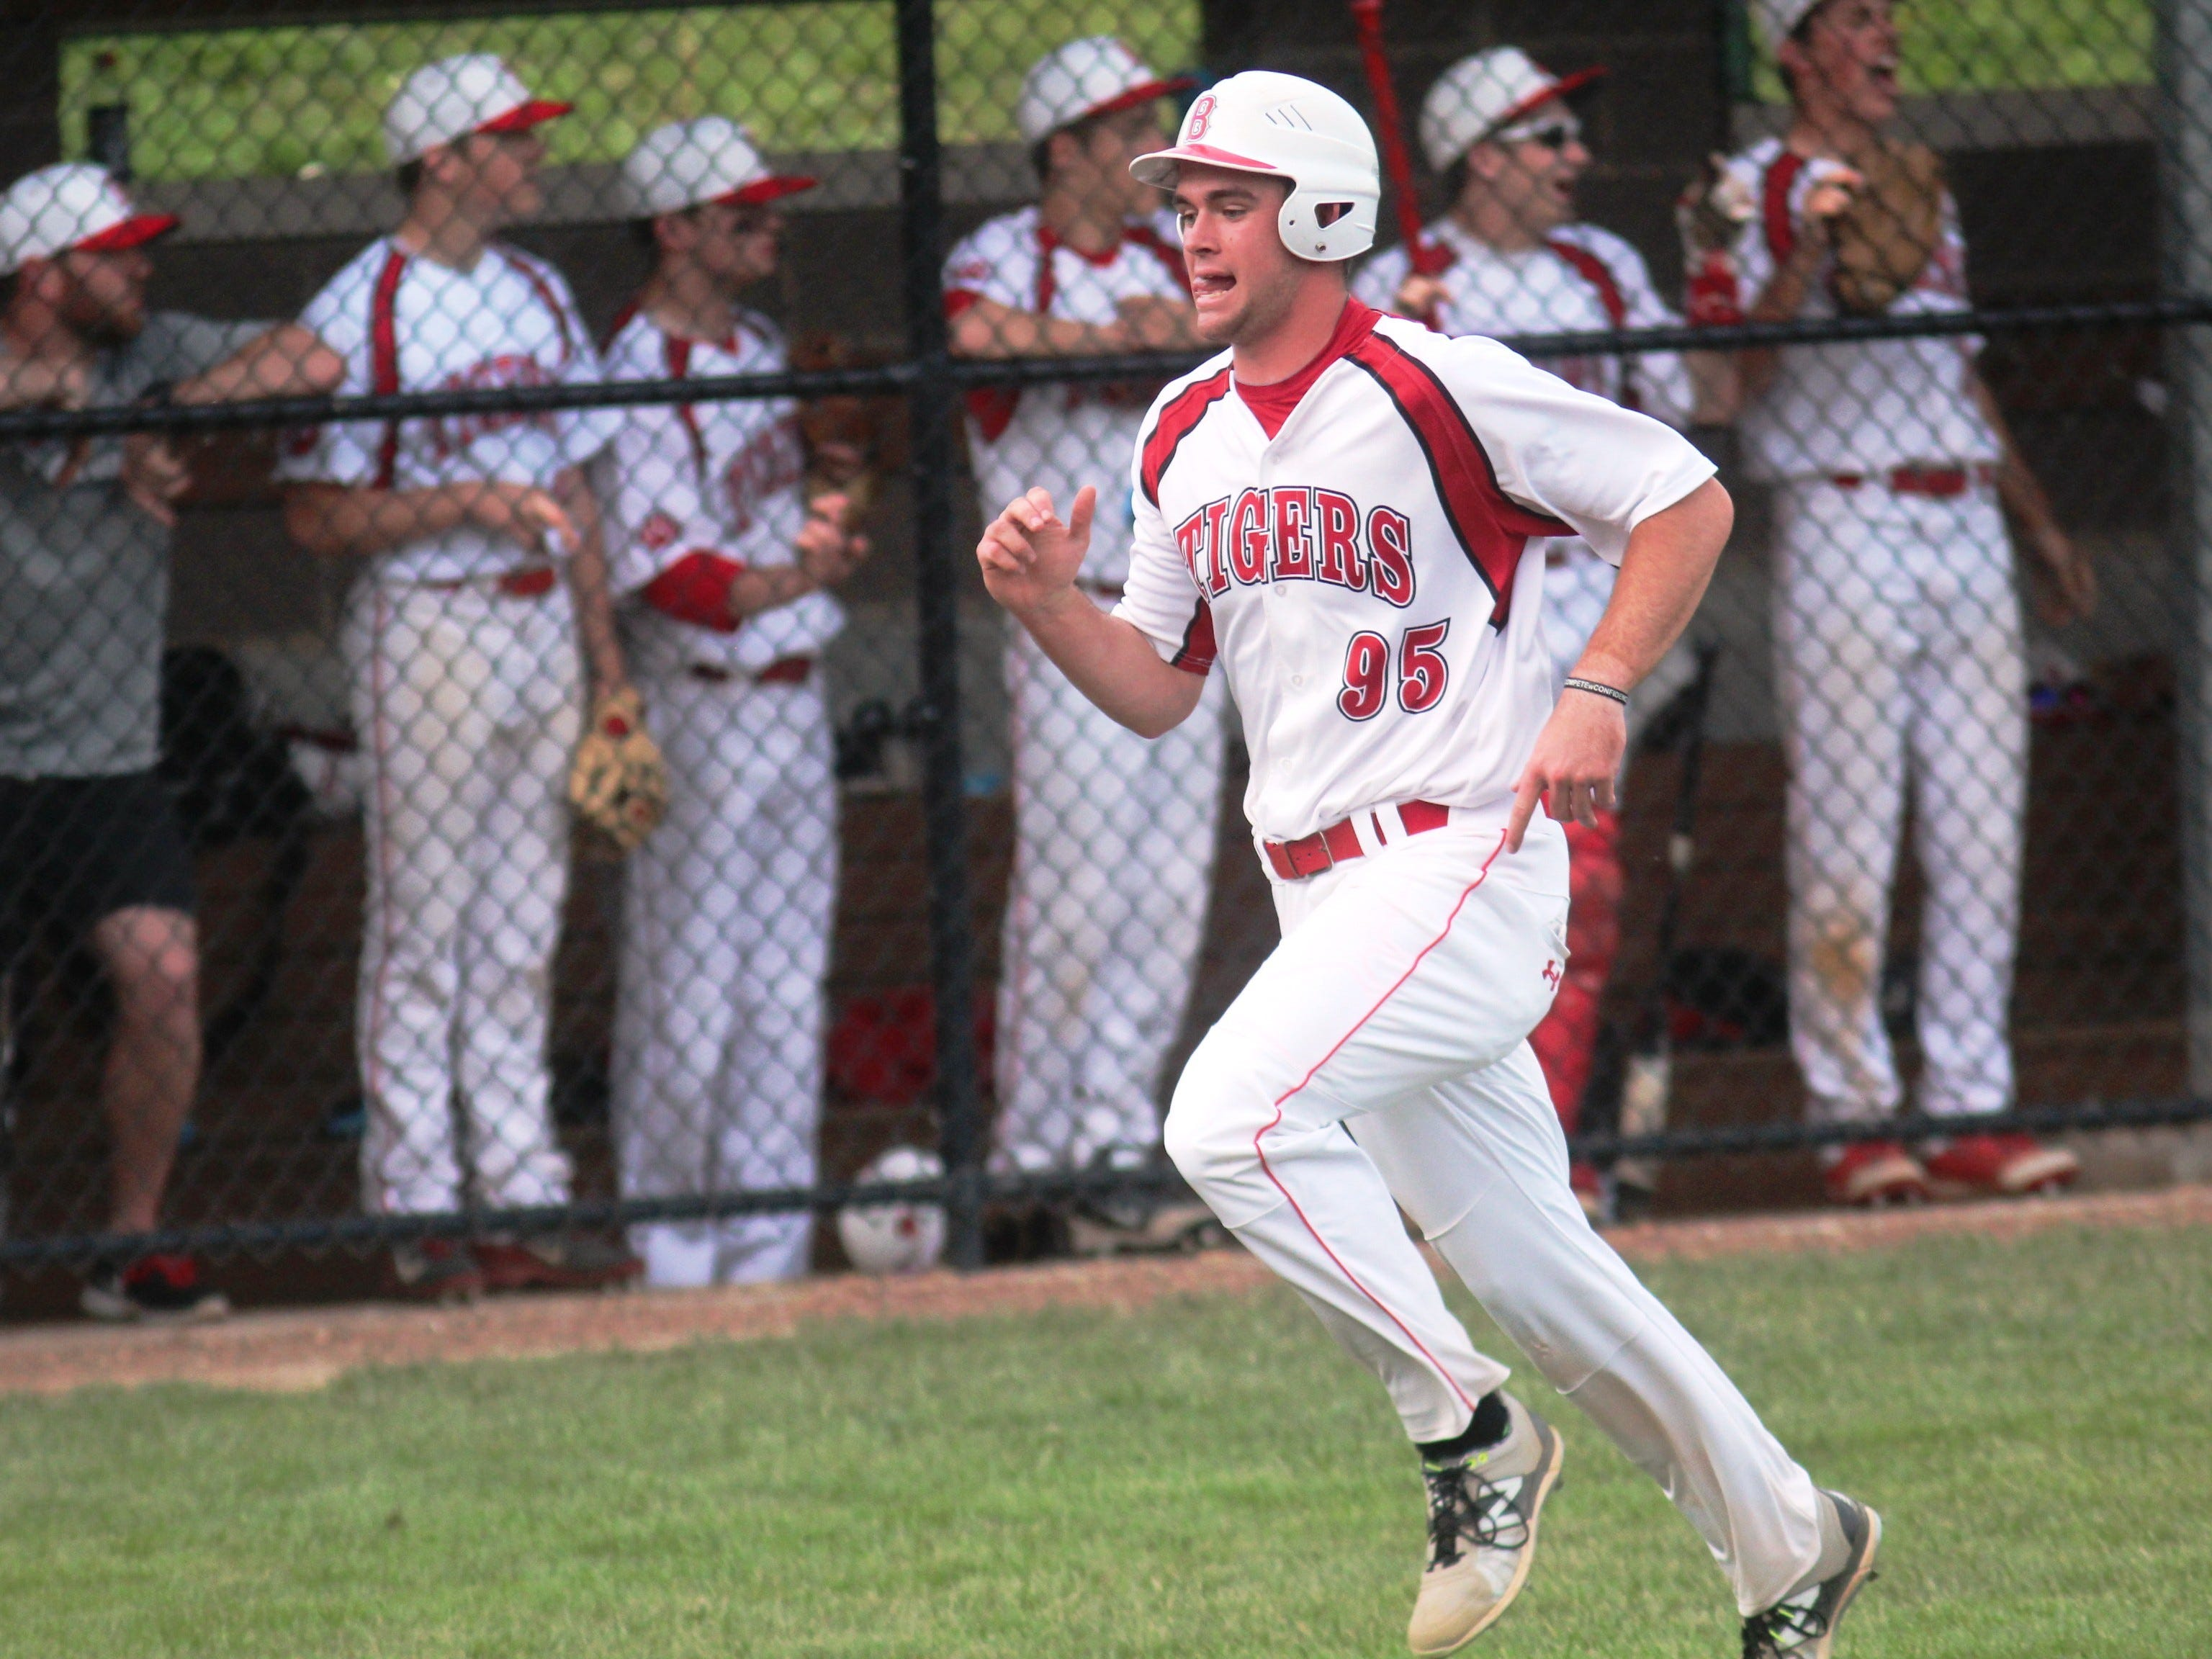 Beechwood junior Brayden Combs scores a run in the April 17 Doc Morris Invitational game against Moeller.